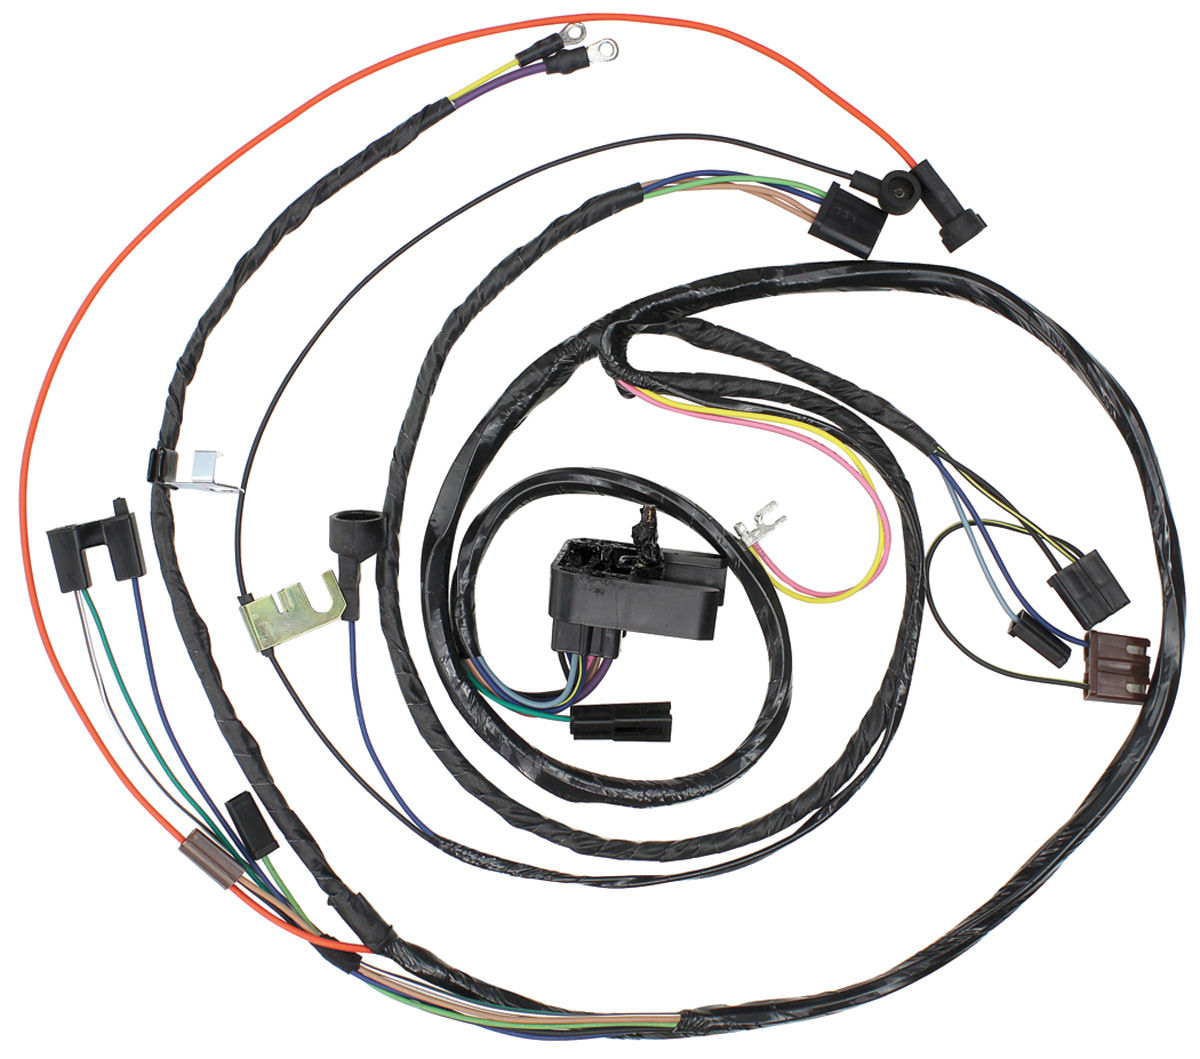 M&H 1971 Chevelle Engine Harness 396/454 Manual Trans. @ OPGI.com  Chevelle V Engine Diagram on 65 mustang engine diagram, 66 mustang engine diagram, 70 chevelle 454 engine, 06 mustang engine diagram,